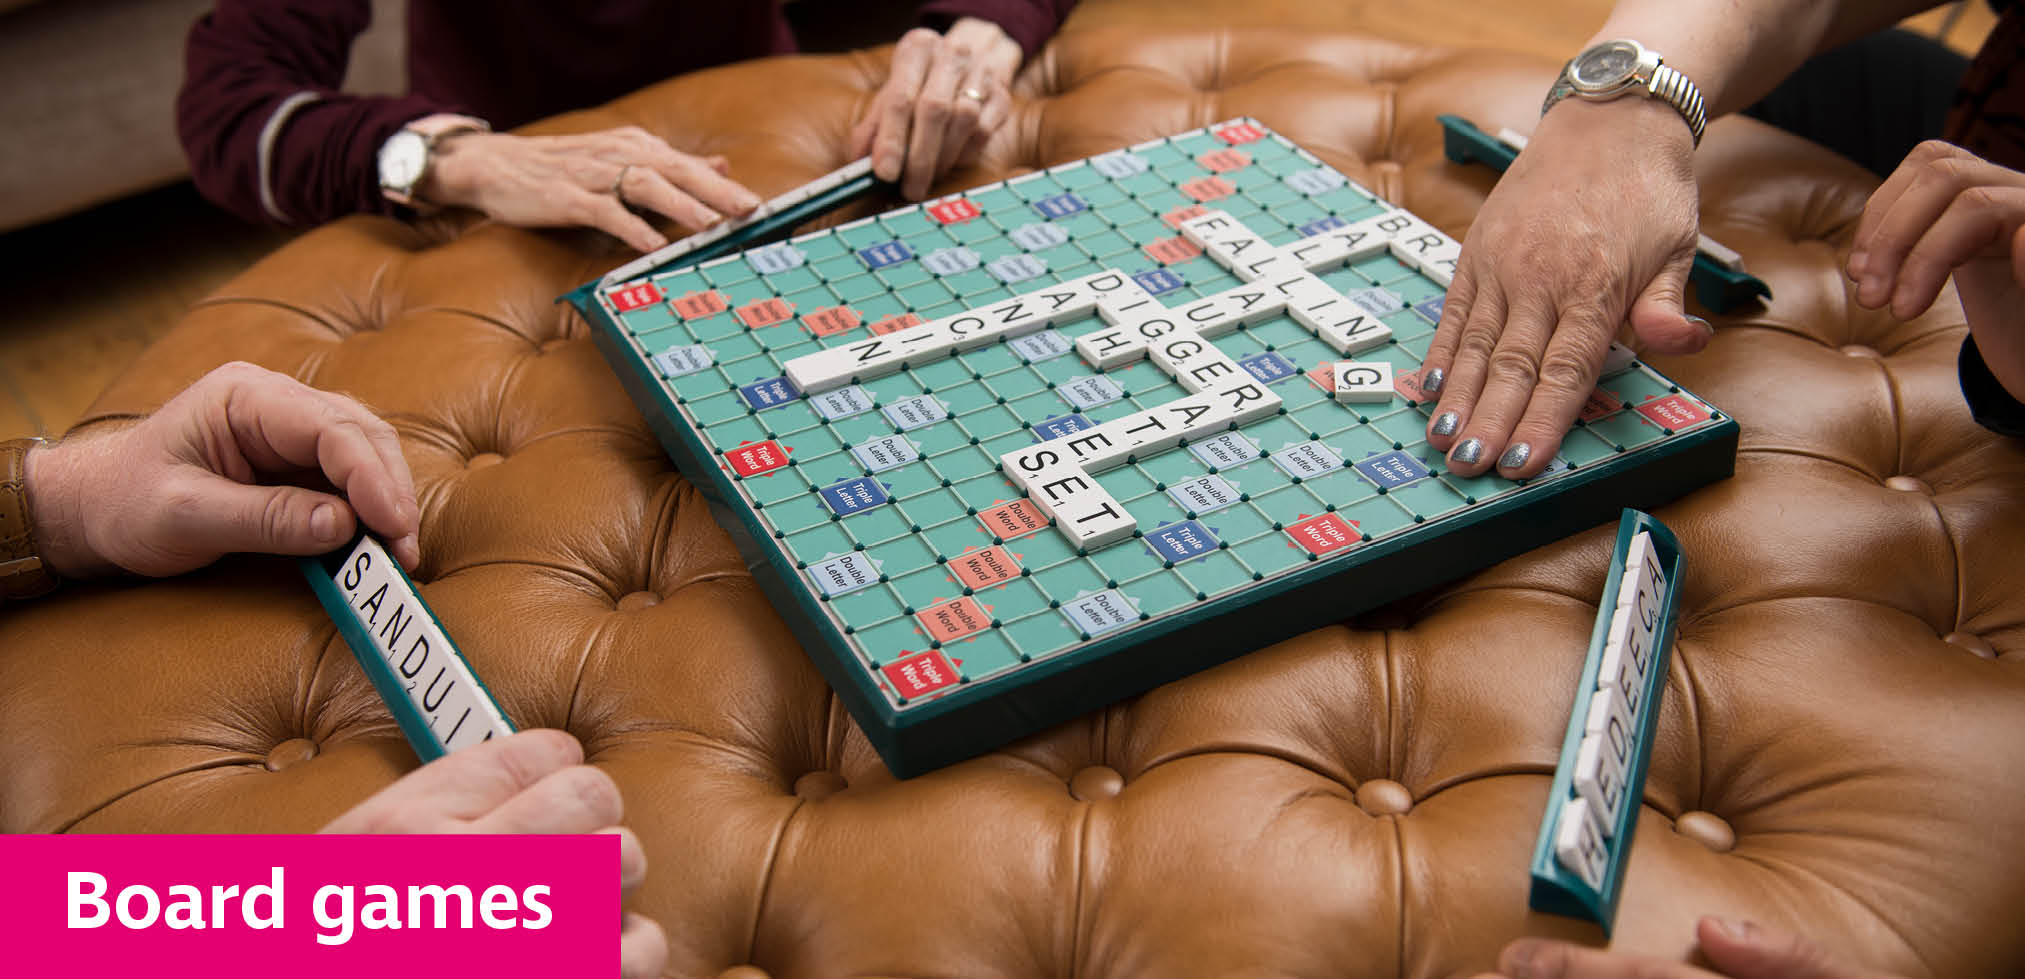 People playing Scrabble